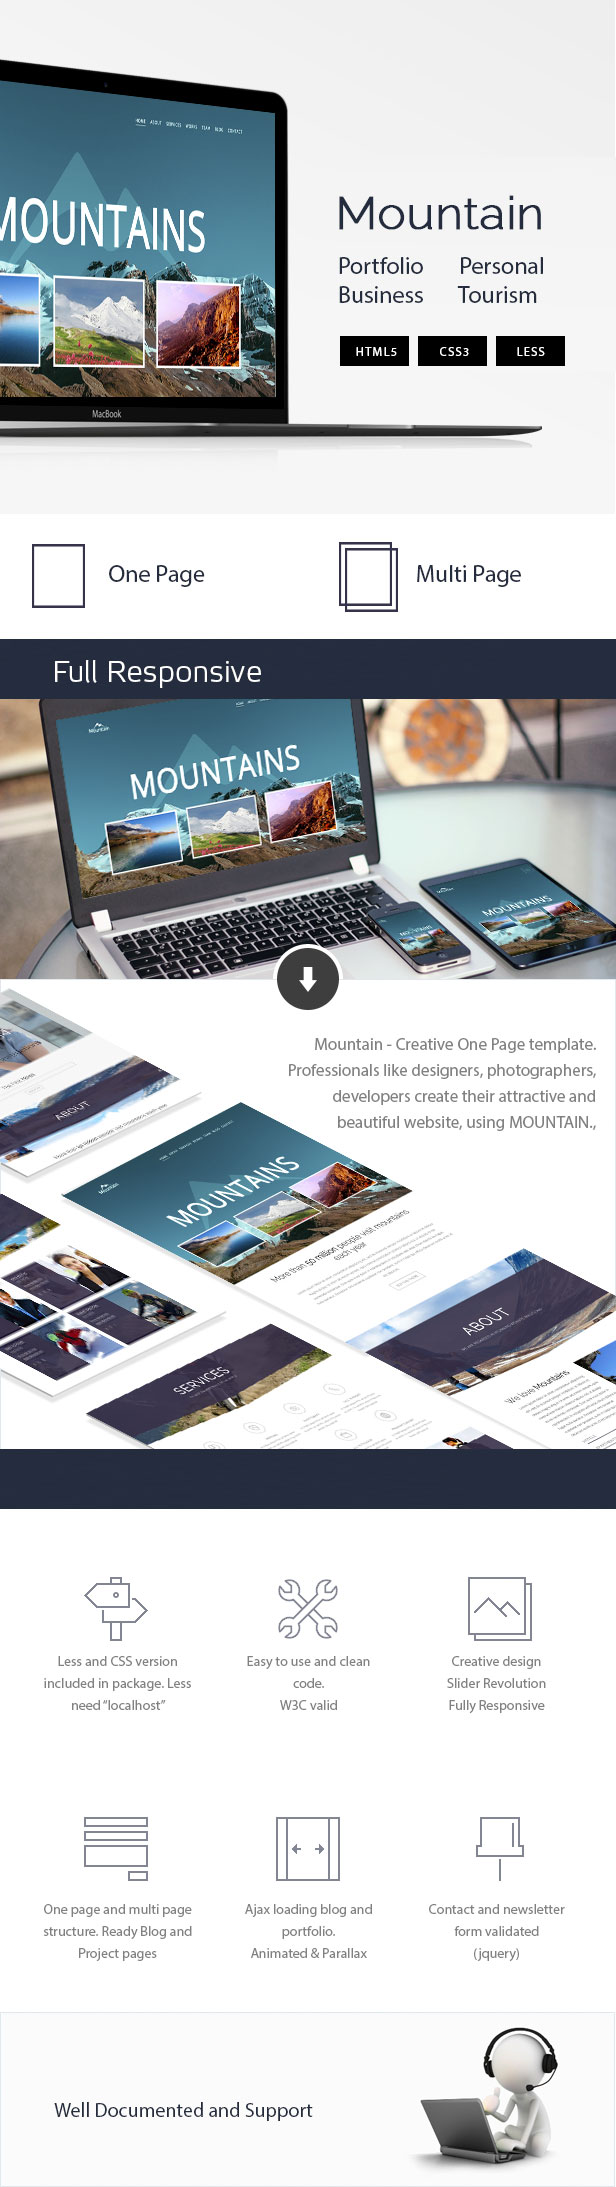 Mountain - Creative OnePage & MultiPage Template